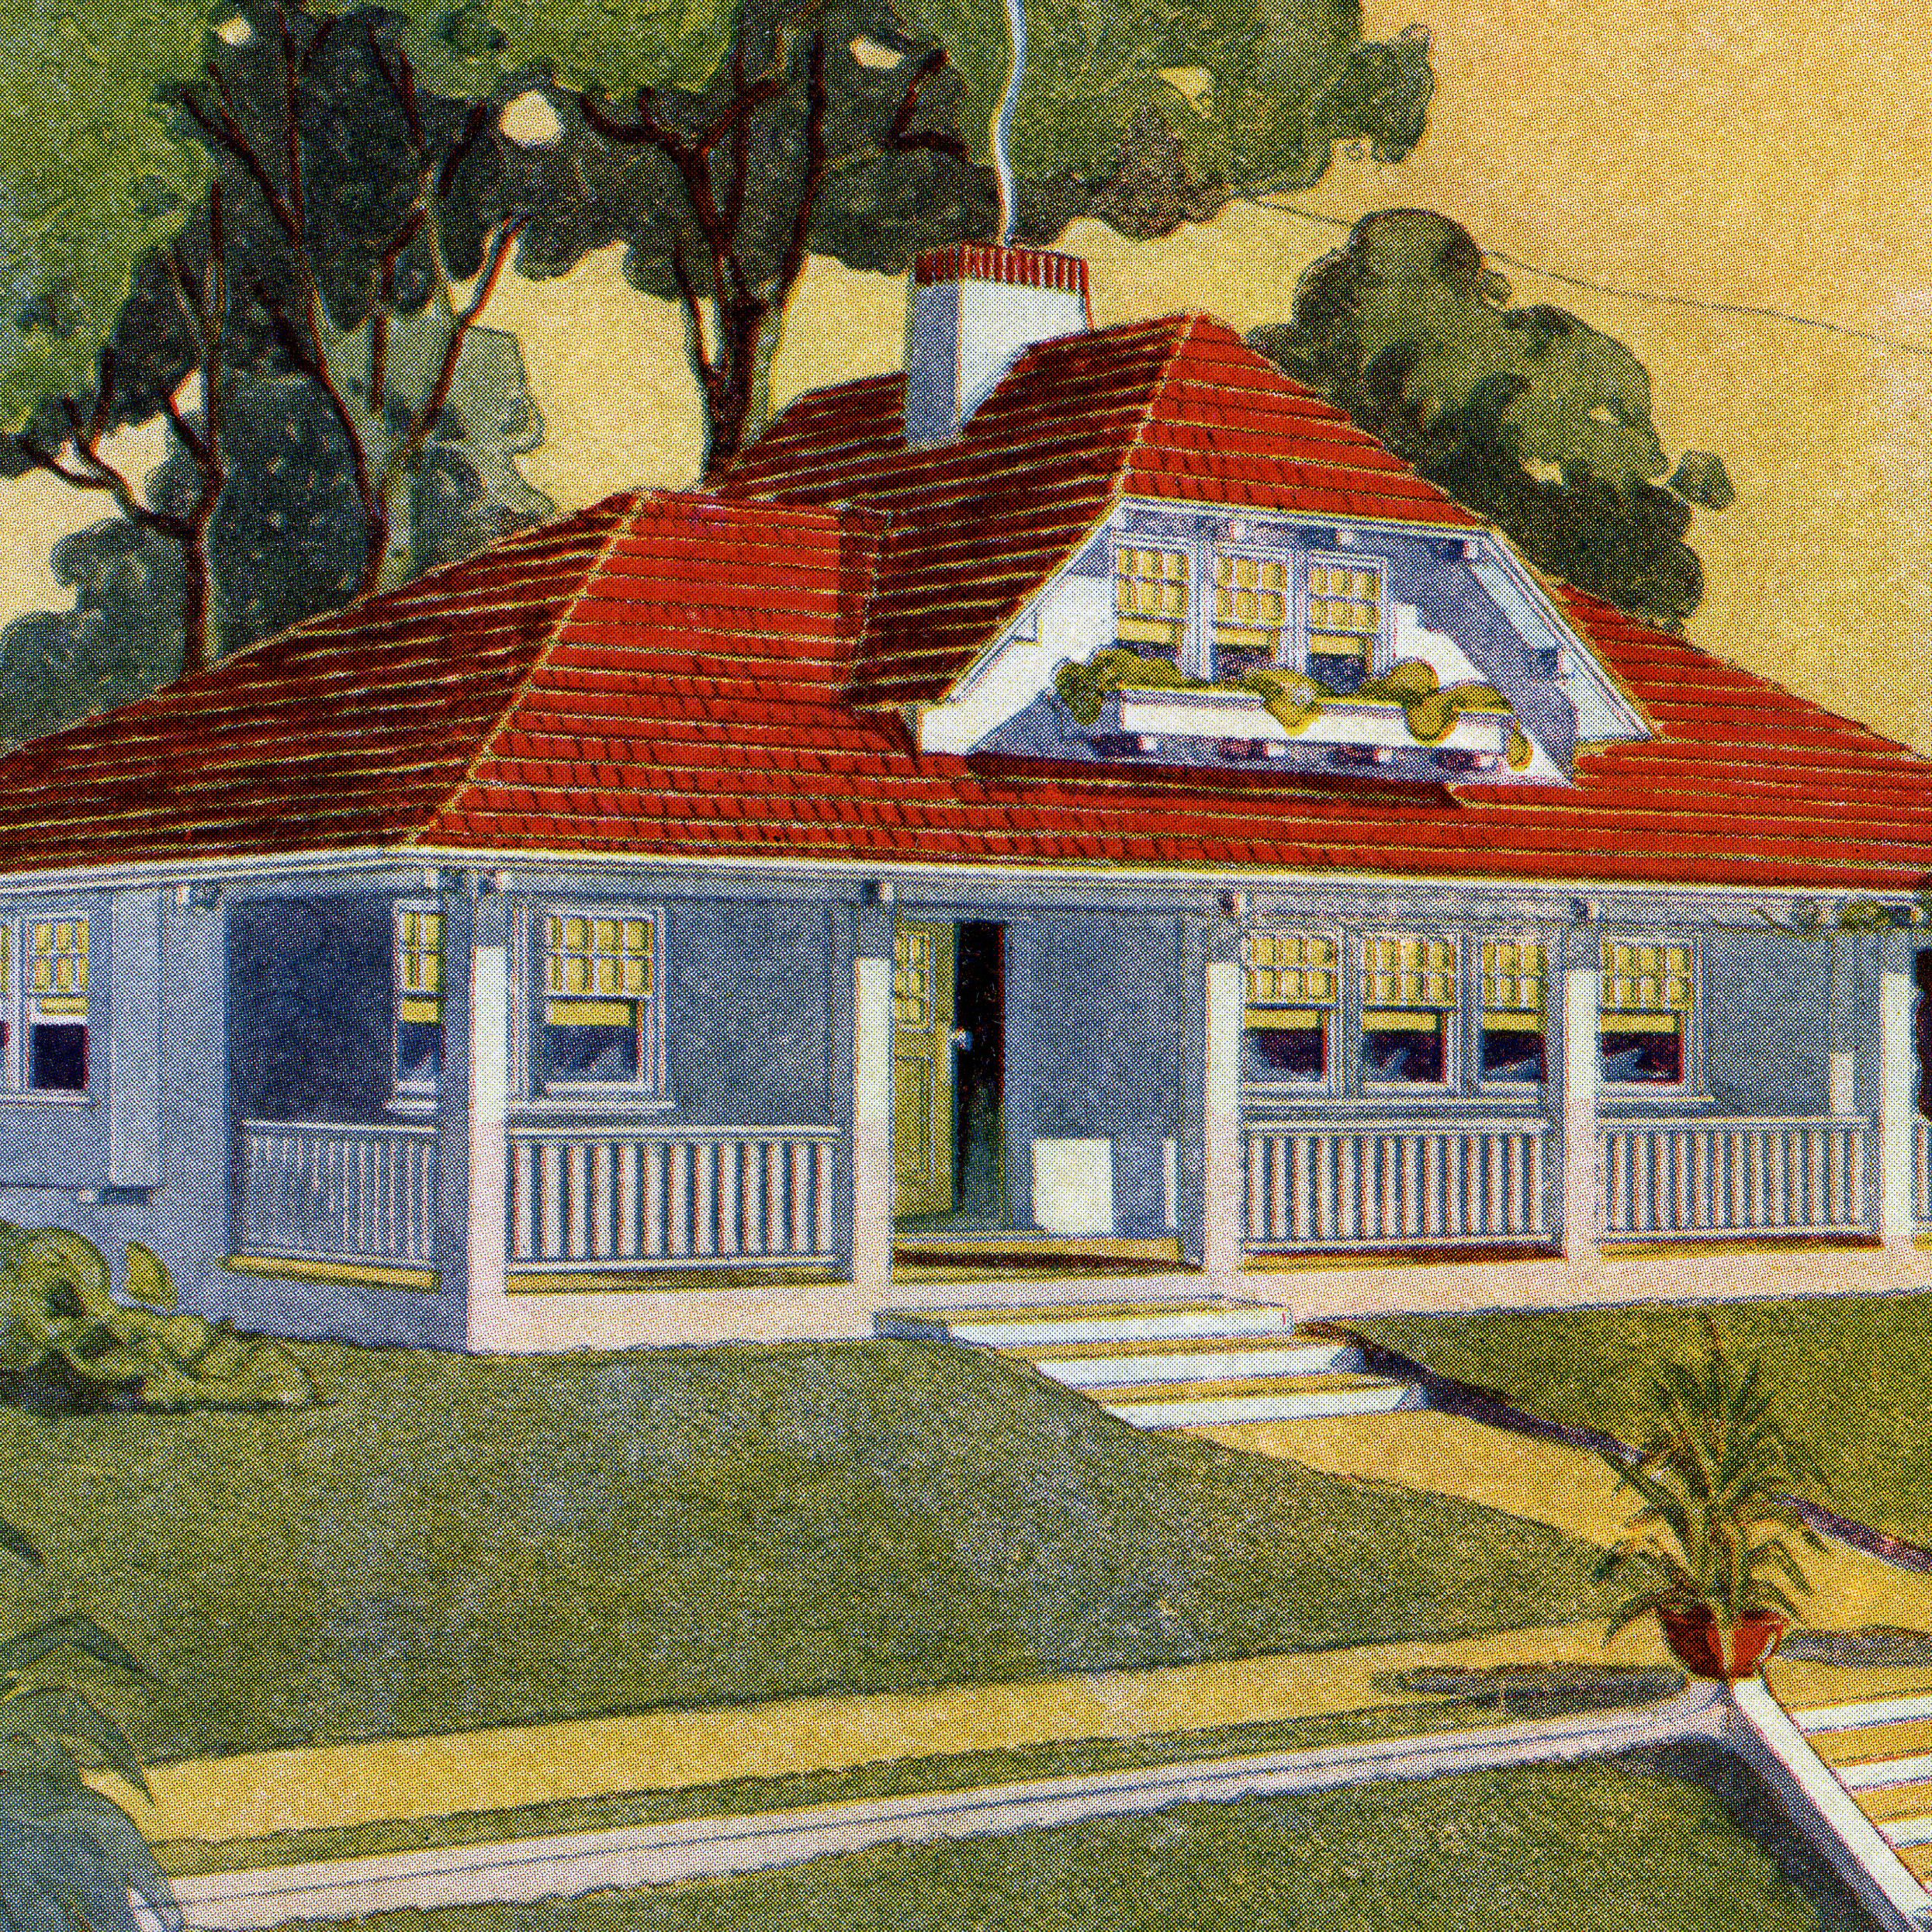 home decor catalogs home decor catalogs.htm bungalow house plans and other small homes by mail  bungalow house plans and other small